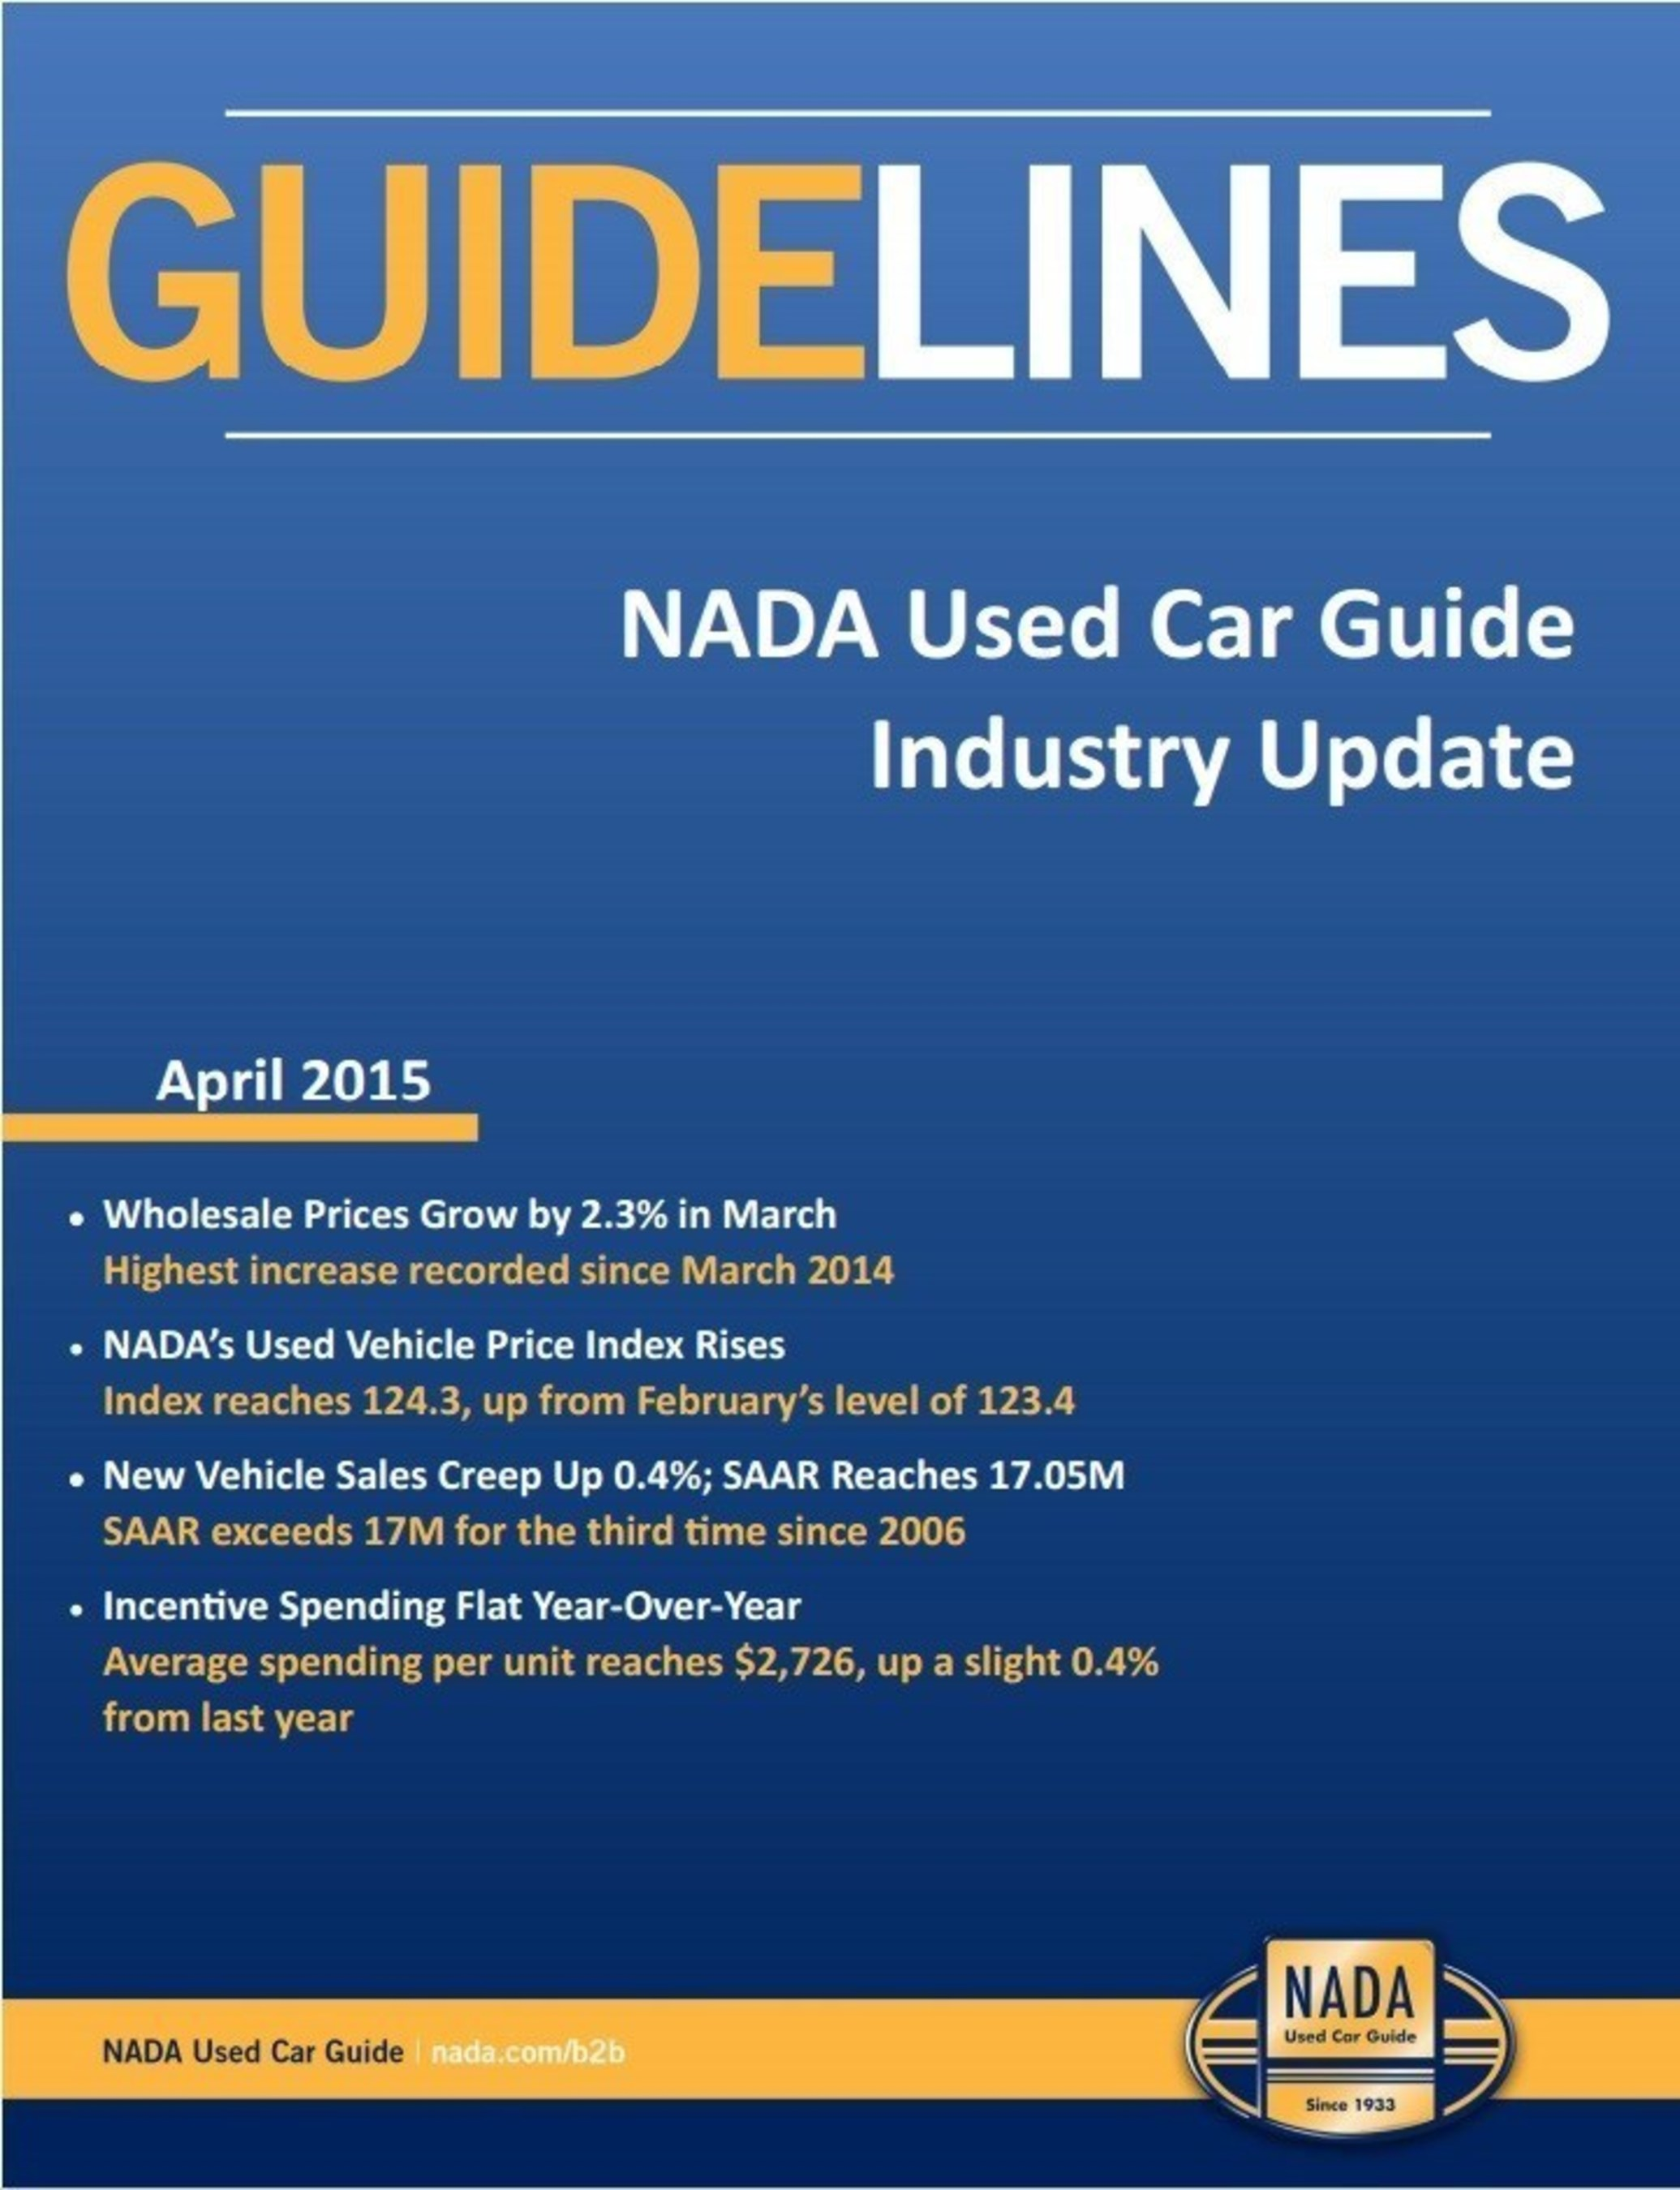 With tax refund checks filling the bank accounts of millions of Americans, analysts at NADA Used Car Guide believe April will continue the upward sales and pricing trends they've observed. Learn more in the April edition of Guidelines.